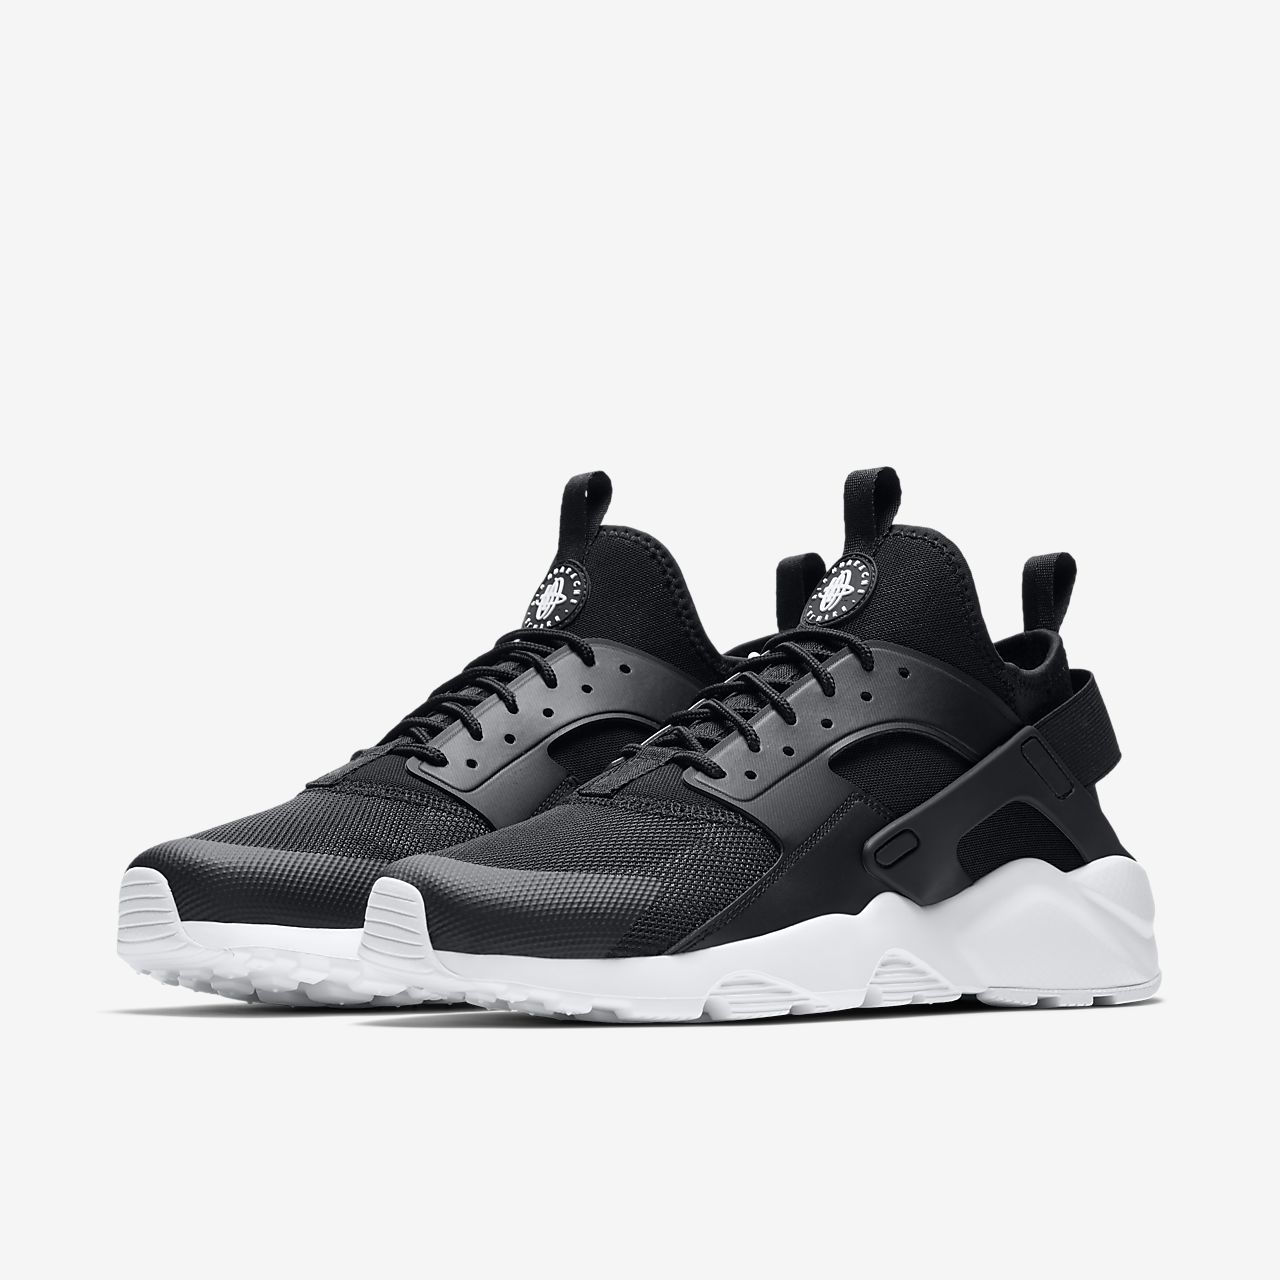 hot sale online bddfd 3768c ... Nike Air Huarache Ultra Men s Shoe